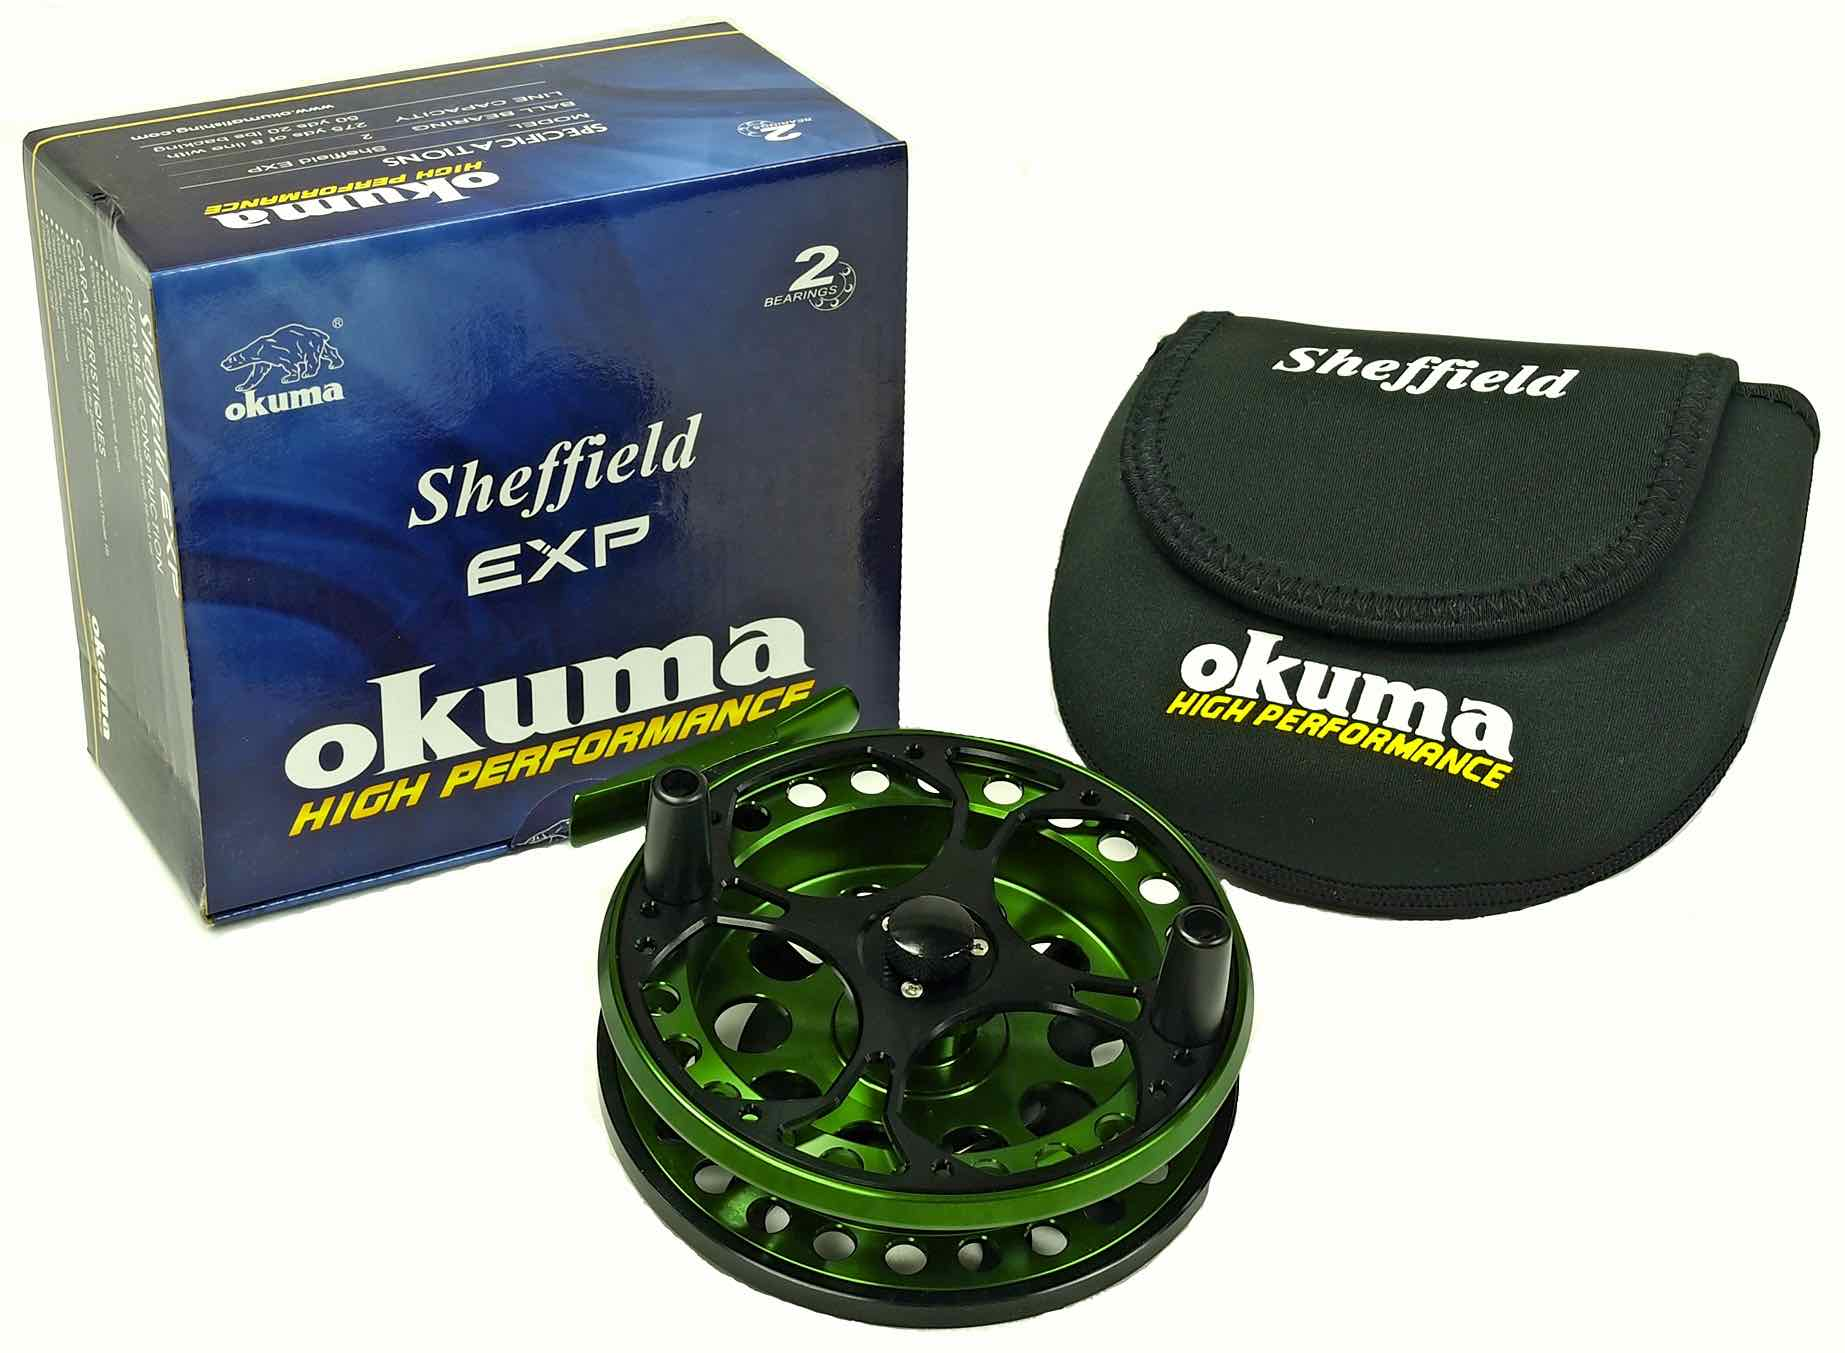 Okuma-Sheffield-EXP-Centerpin-Float-Reel